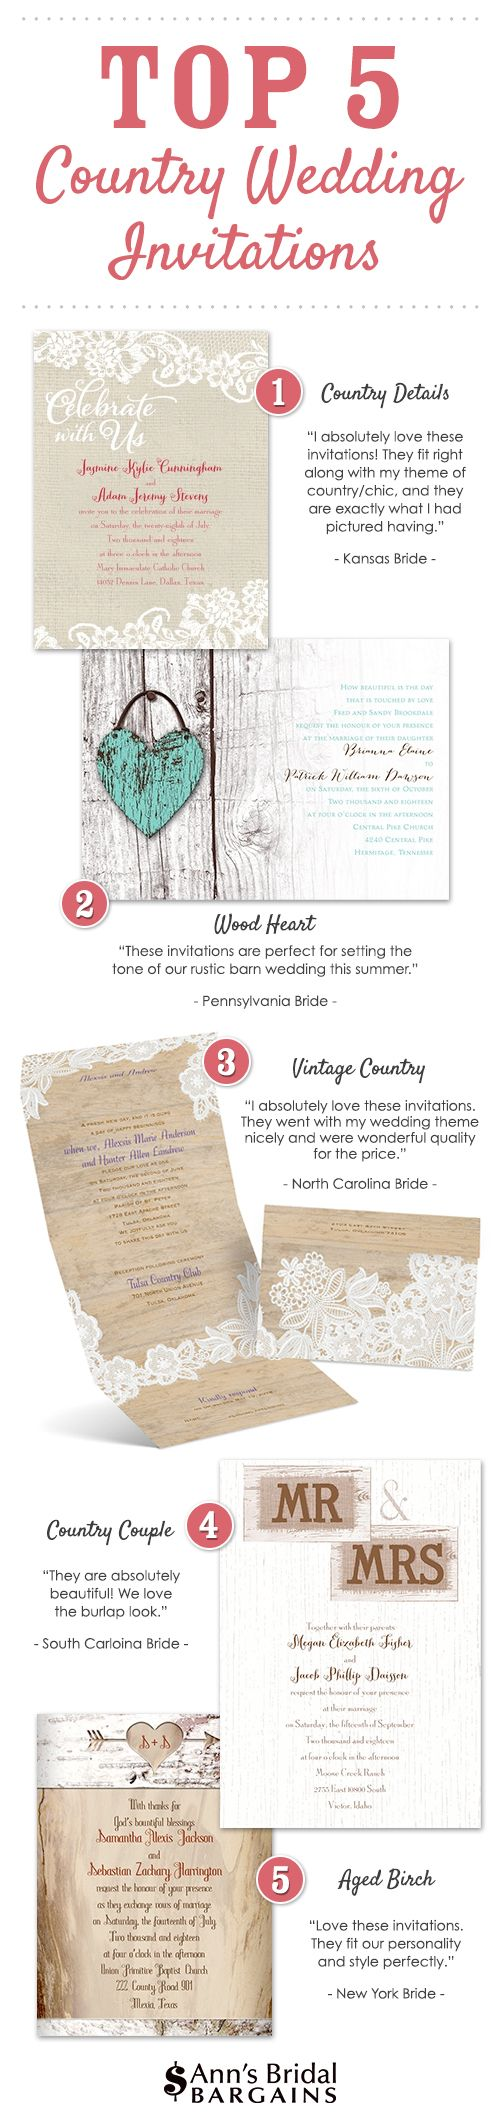 172 Best Affordable Wedding Invitations Images On Pinterest